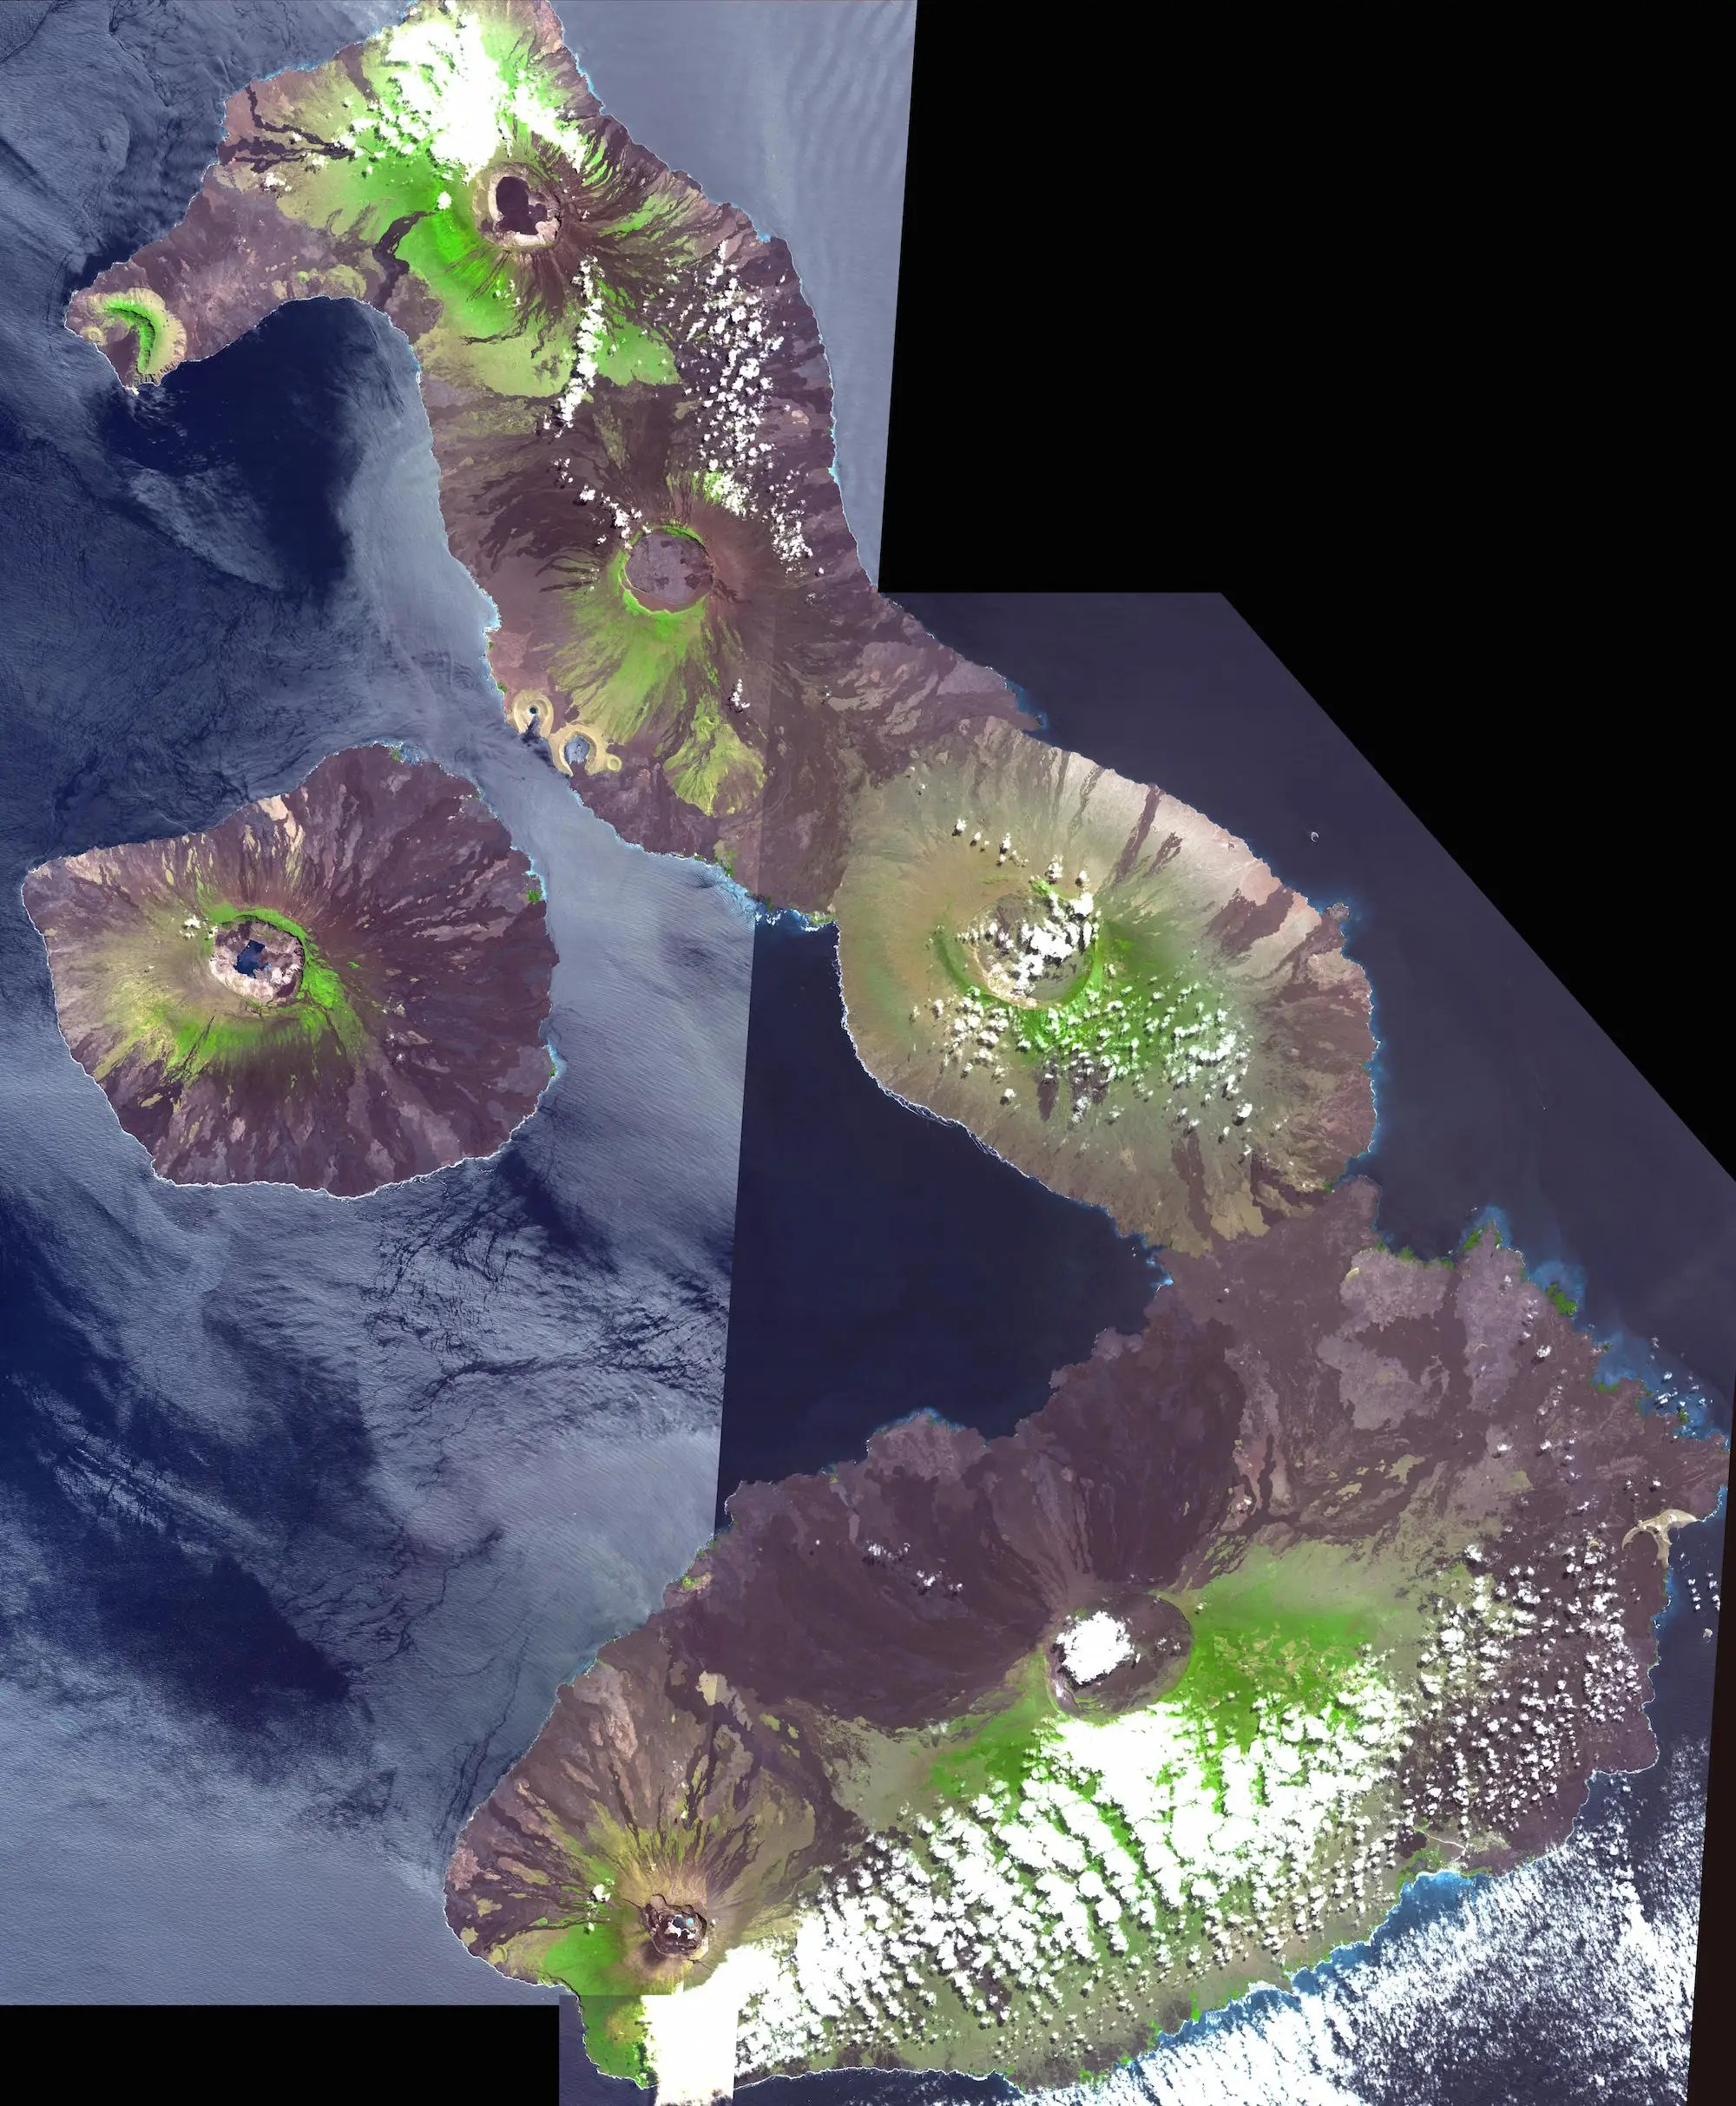 The volcanoes of the Galapagos Islands pushed them out of the Pacific Ocean.